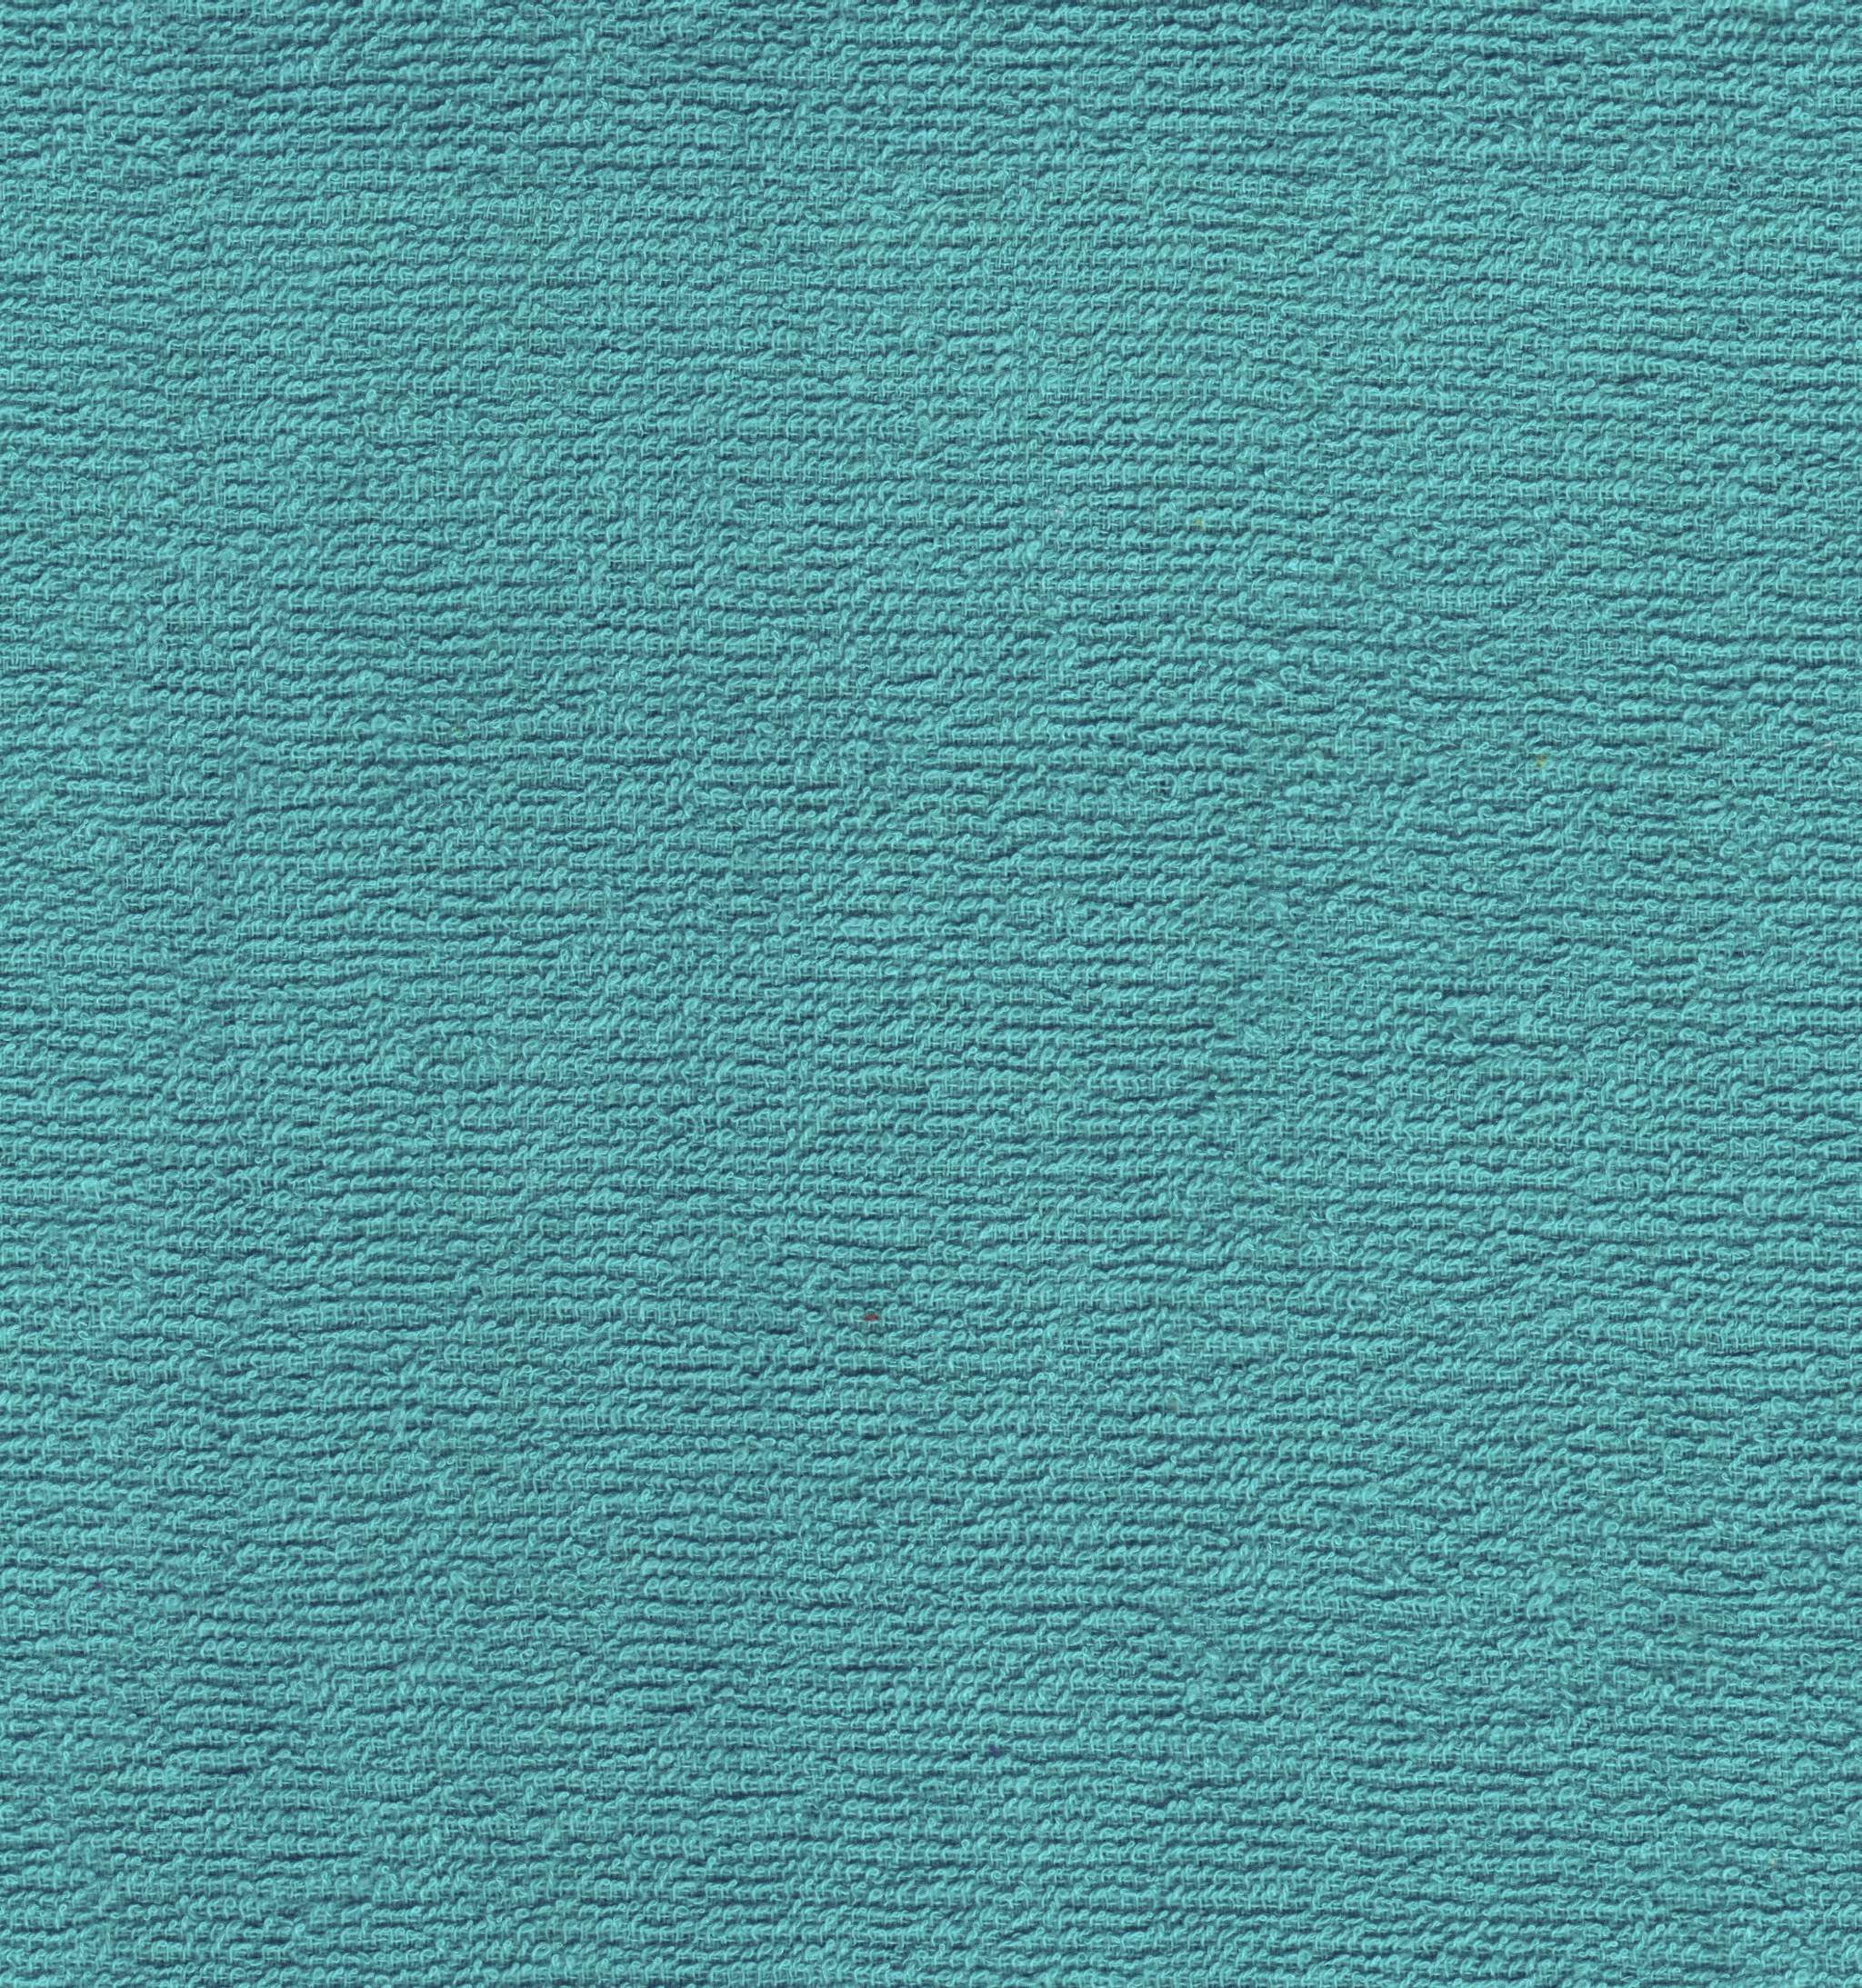 Fabric - Green Towel - Seamless Texture With Normalmap ...